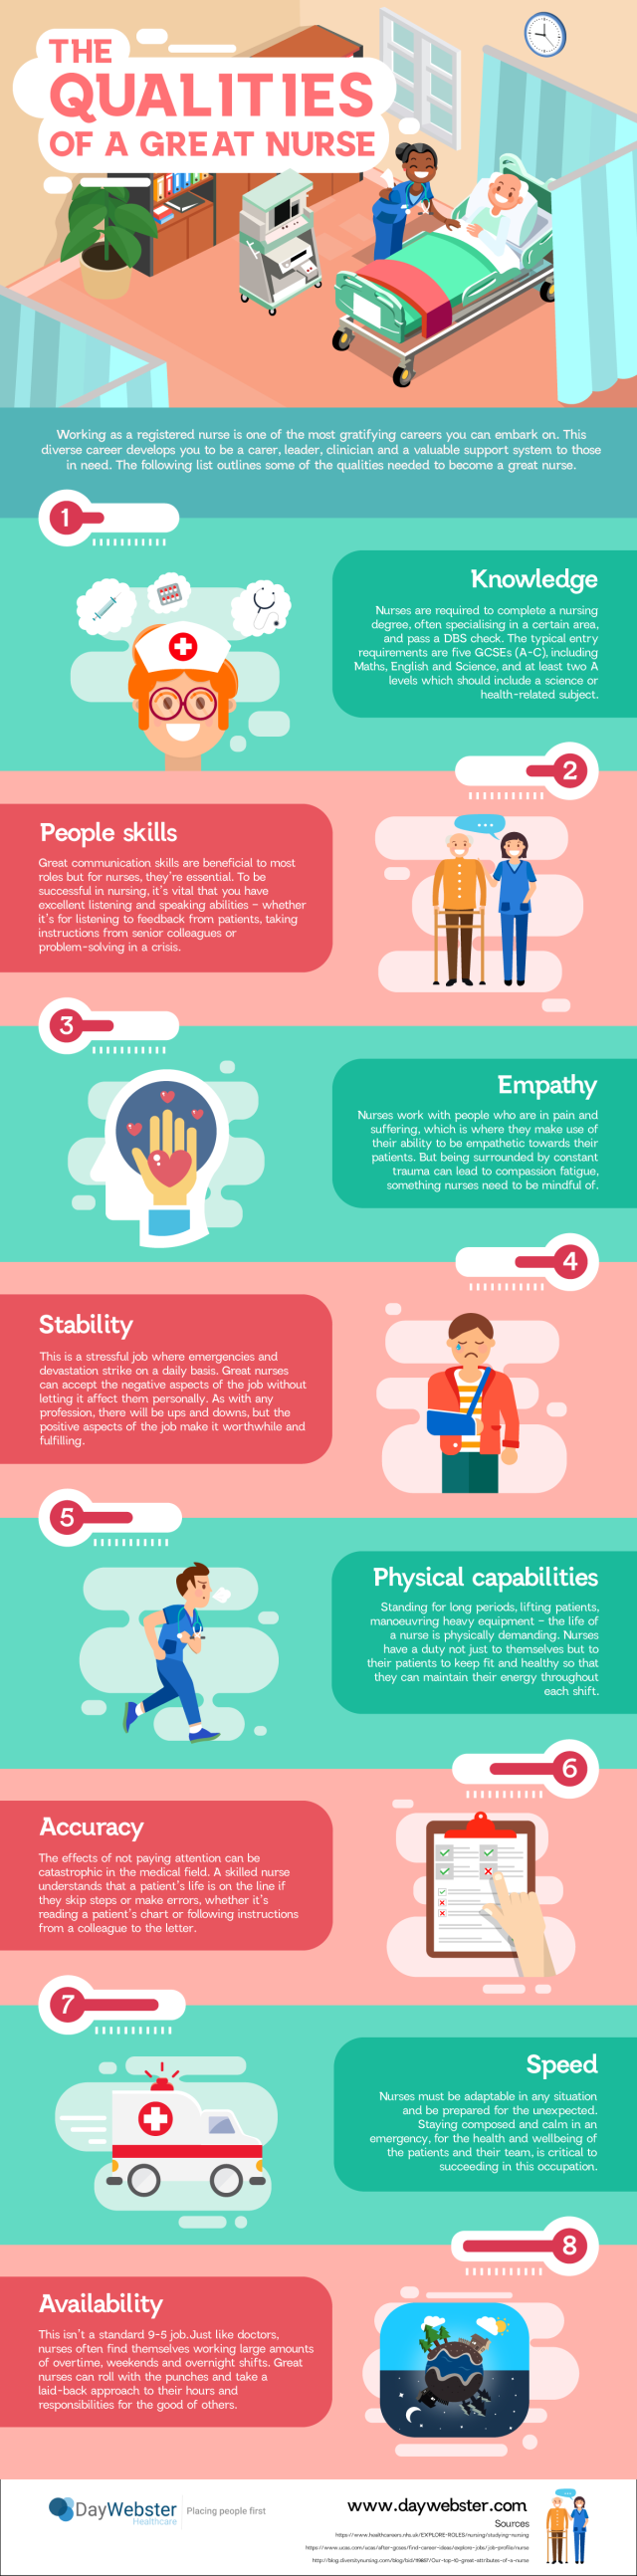 qualities of a great nurse infographic - thefinancialfairytales What Type of Job Should You Encourage Your Child to Pursue?